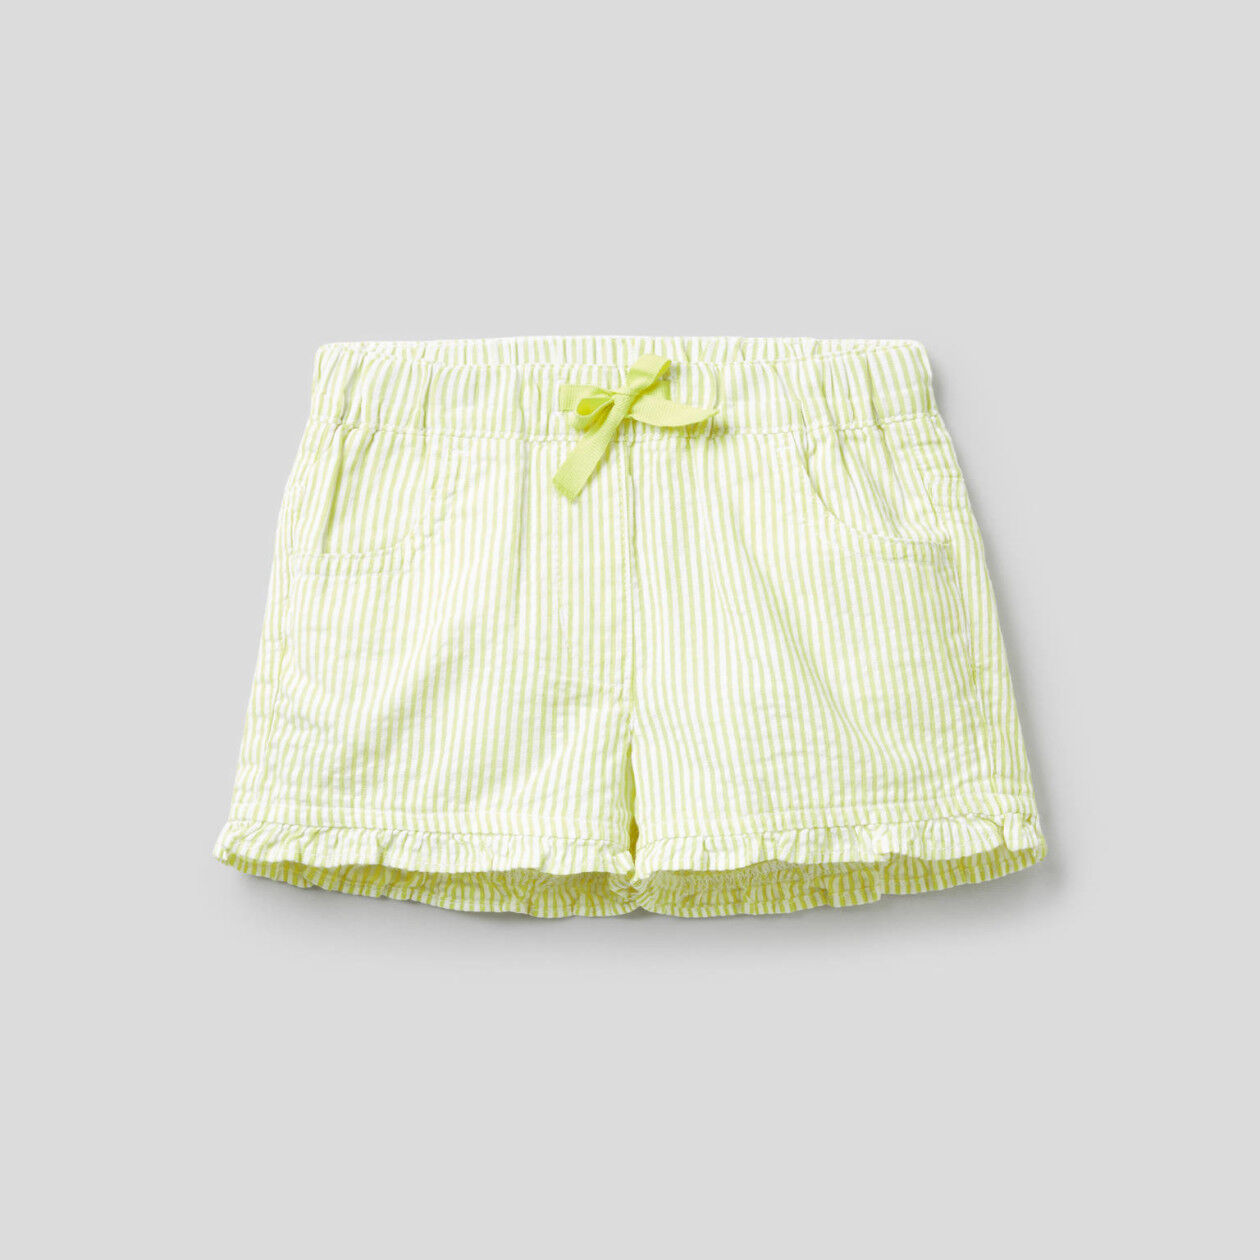 100% cotton yellow striped shorts